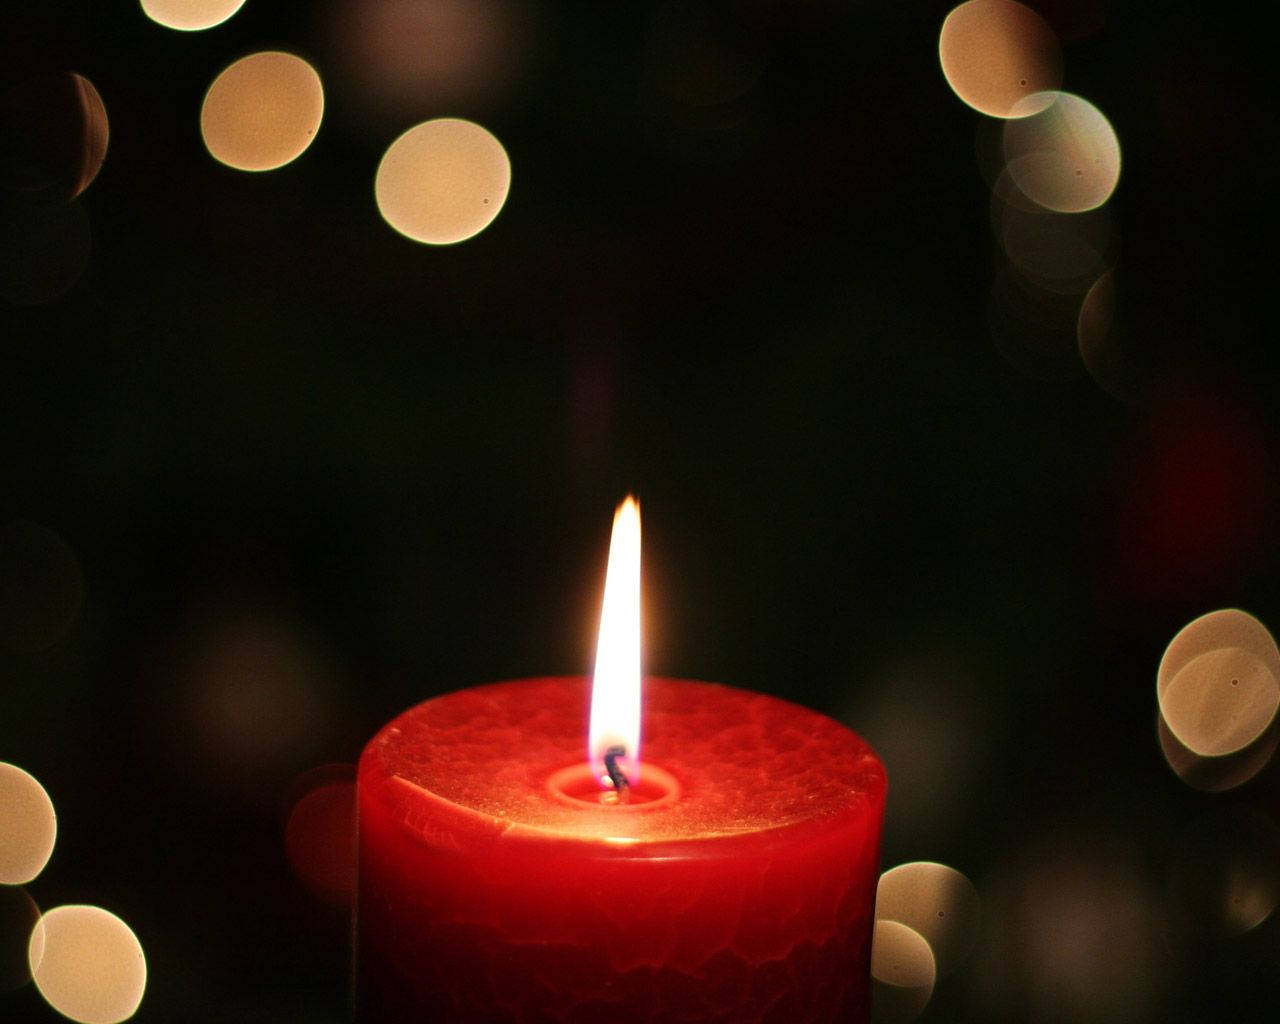 Romantic Candle Light , Romantic Candlelight Pictures, Candles at ... for Lighted Candle Gif  181pct